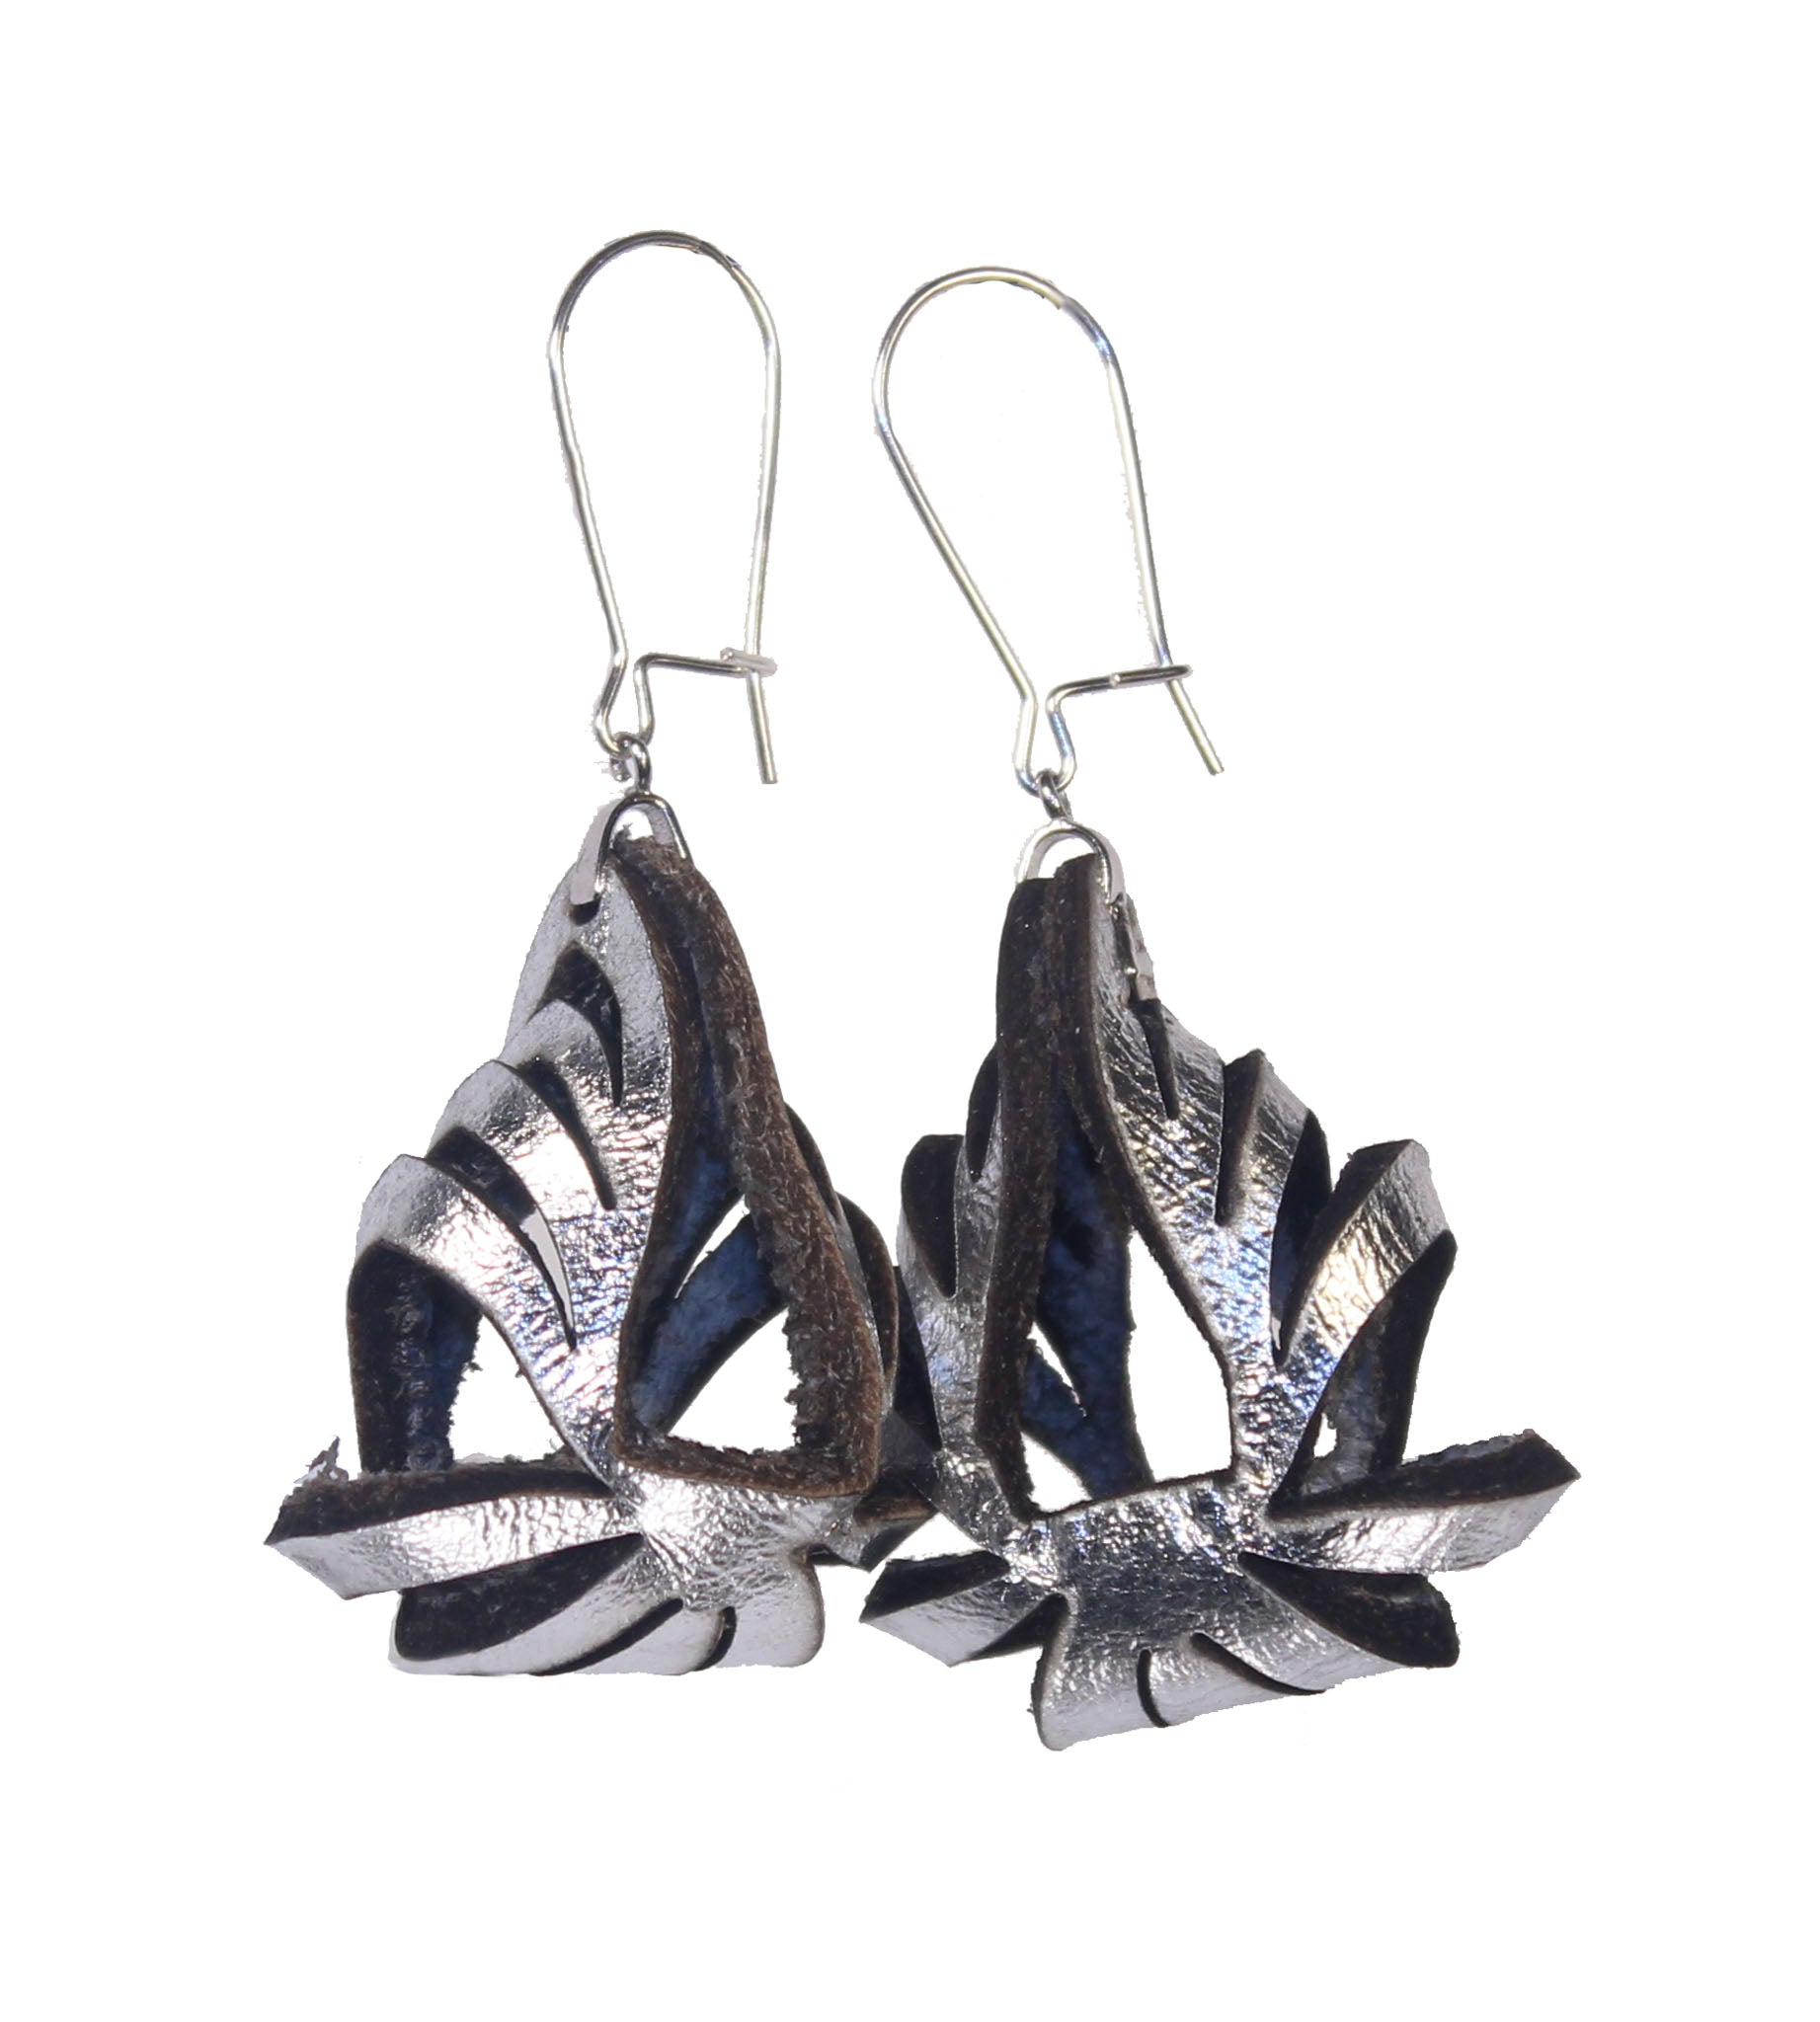 Ava Mini Metallic Leather Earrings - Silver - Amber Poitier Inc.